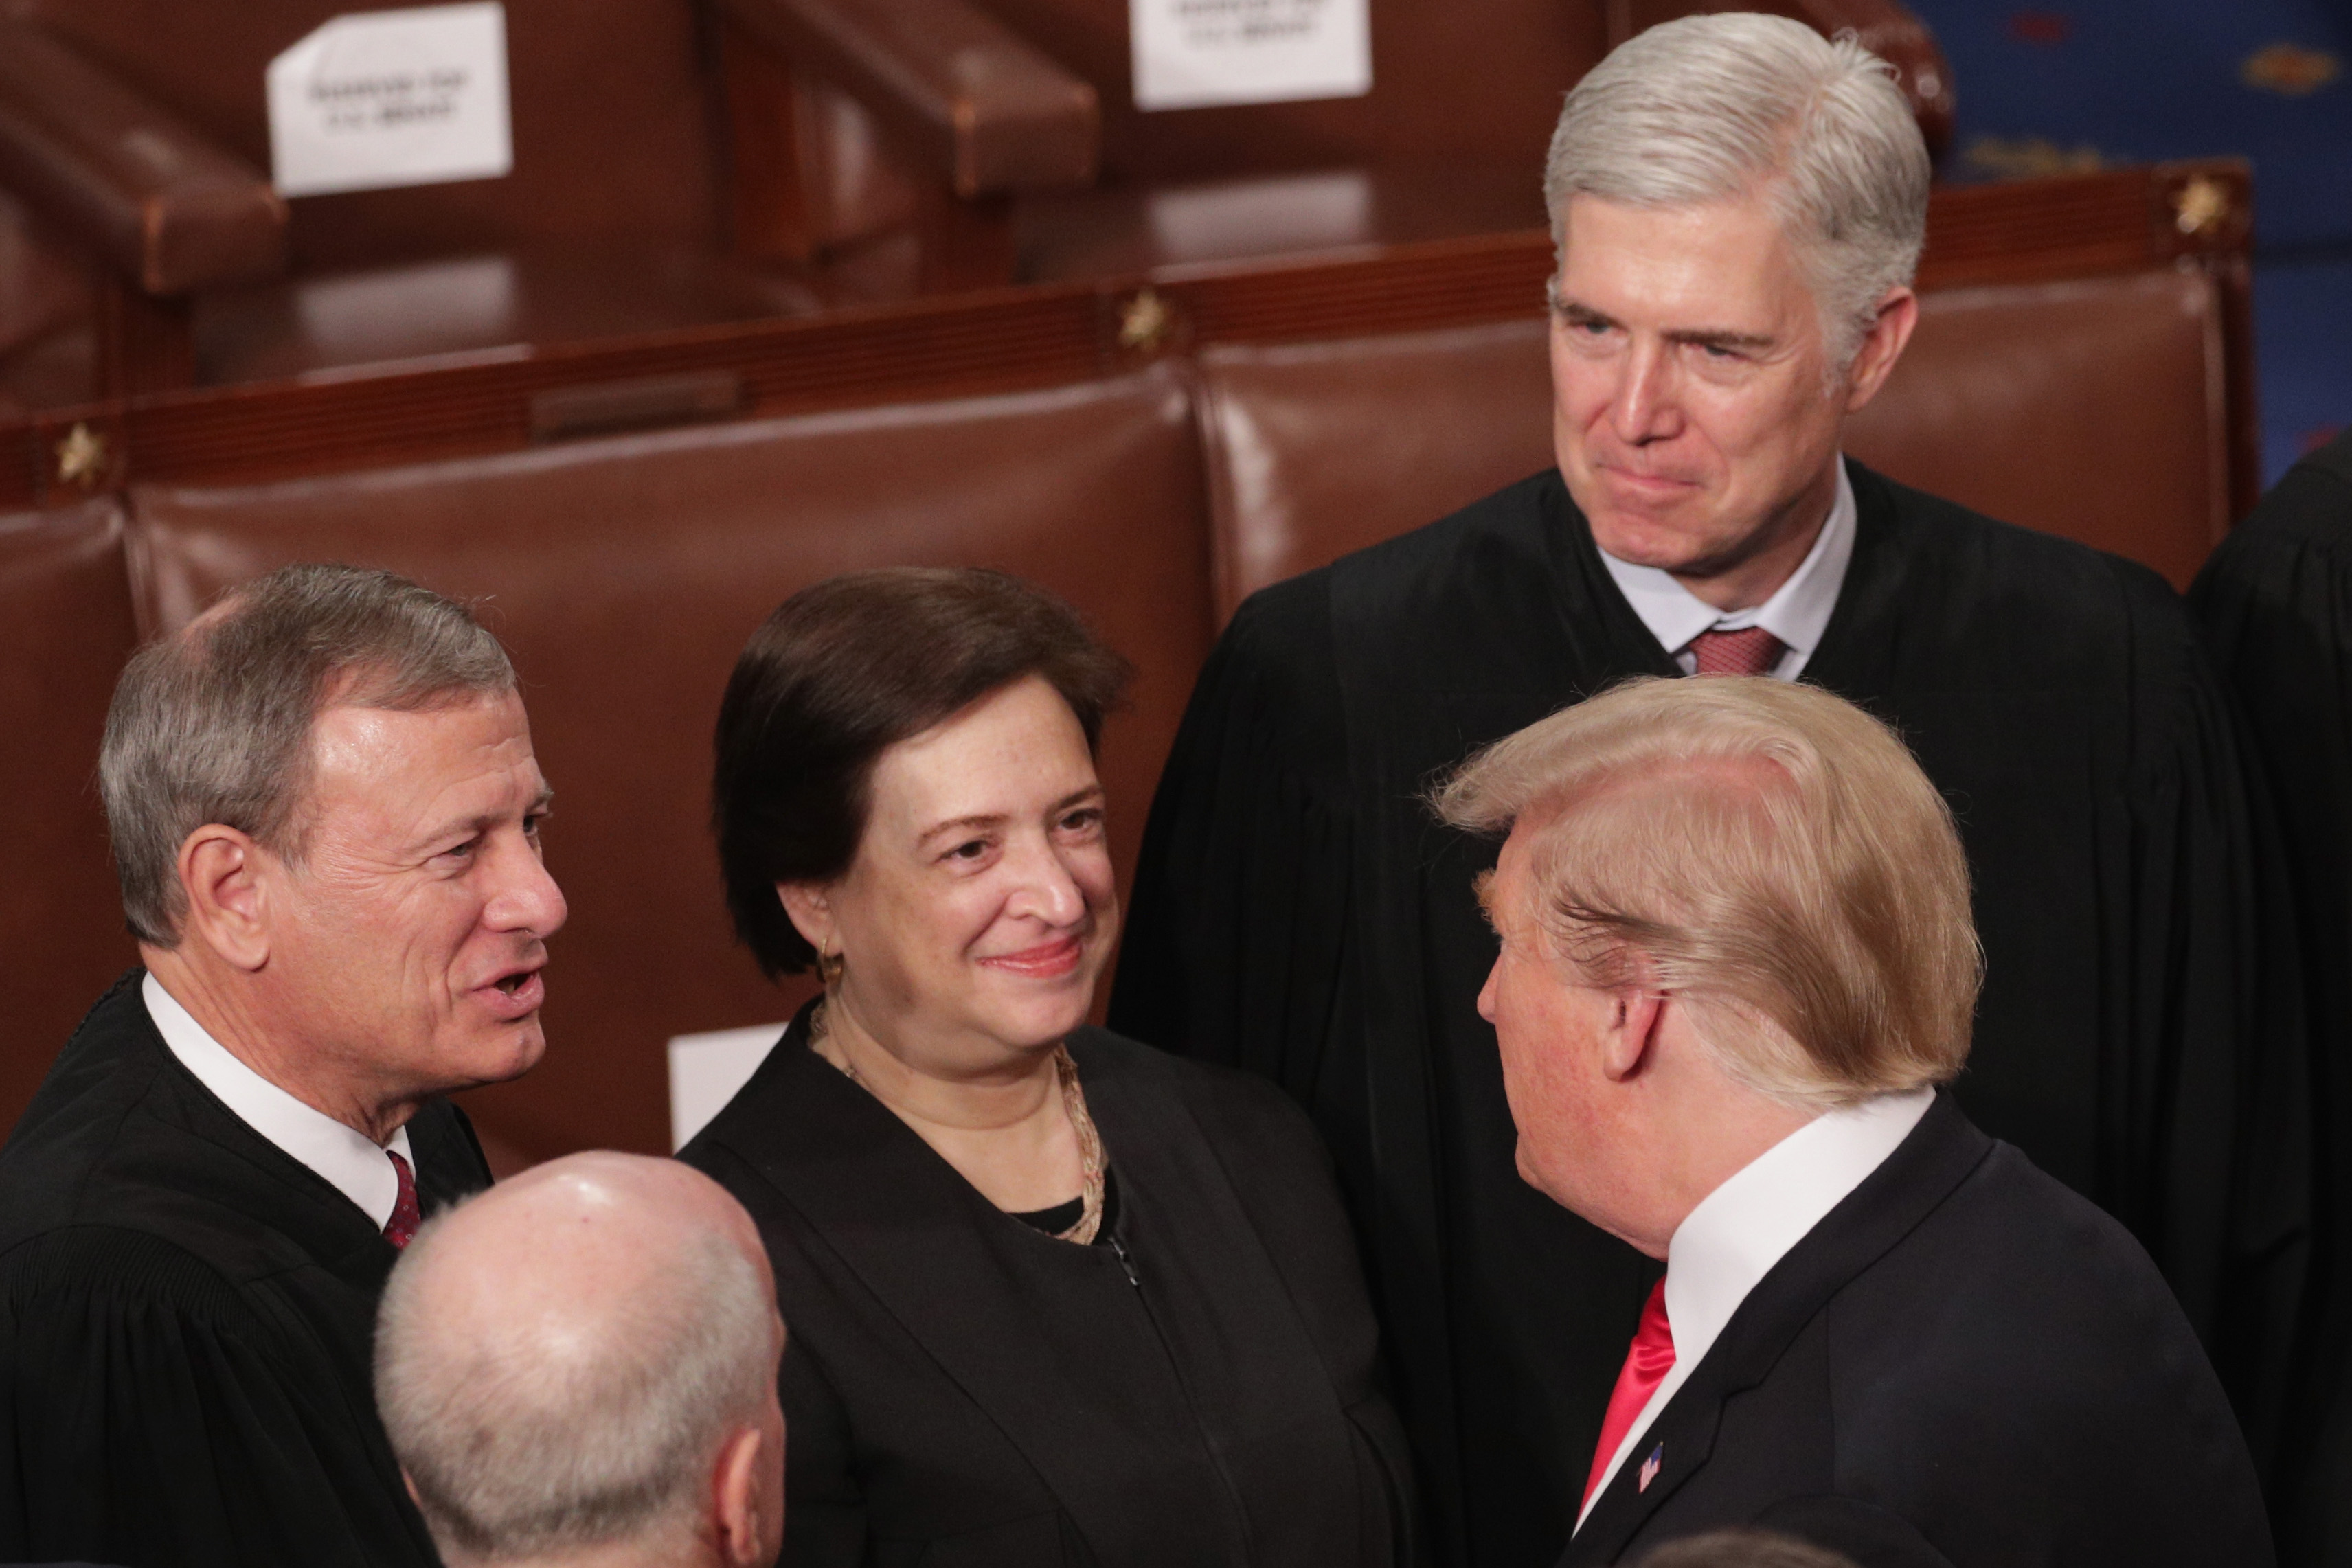 President Donald Trump greets members of the Supreme Court after the State of the Union address on February 5, 2019. (Alex Wong/Getty Images)